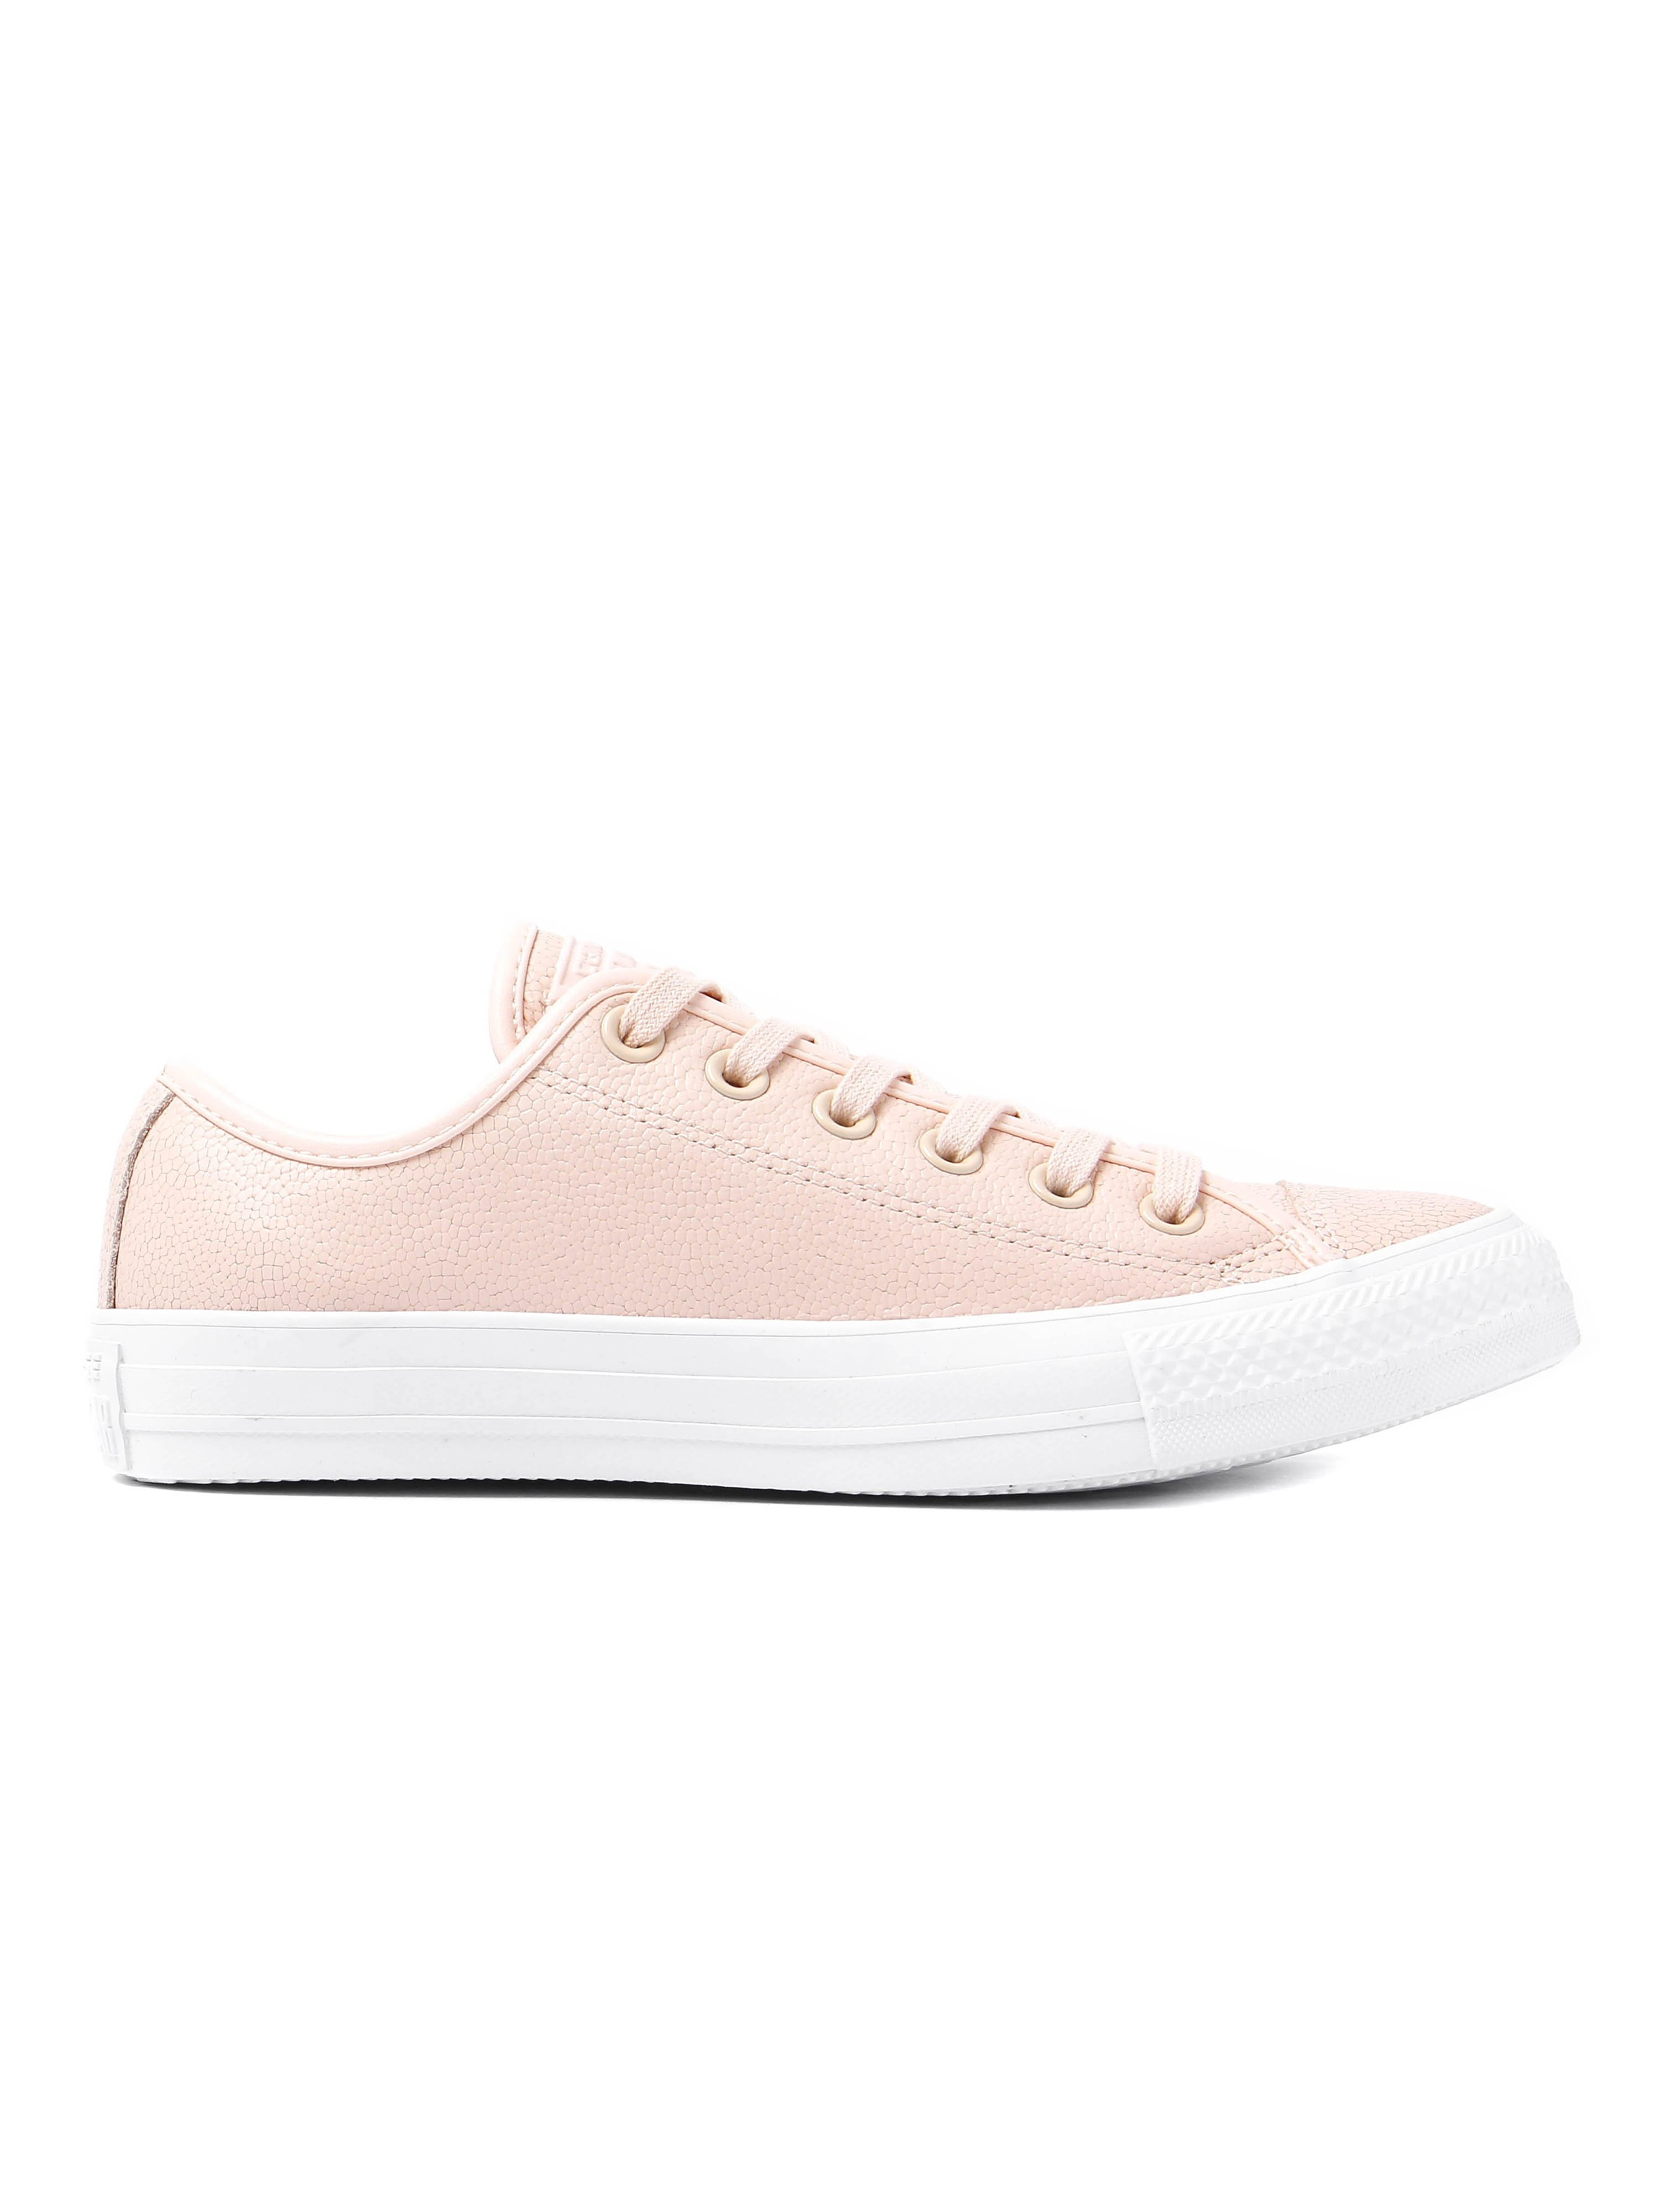 Converse Women's Chuck Taylor All Star OX Trainers - Quartz Orange